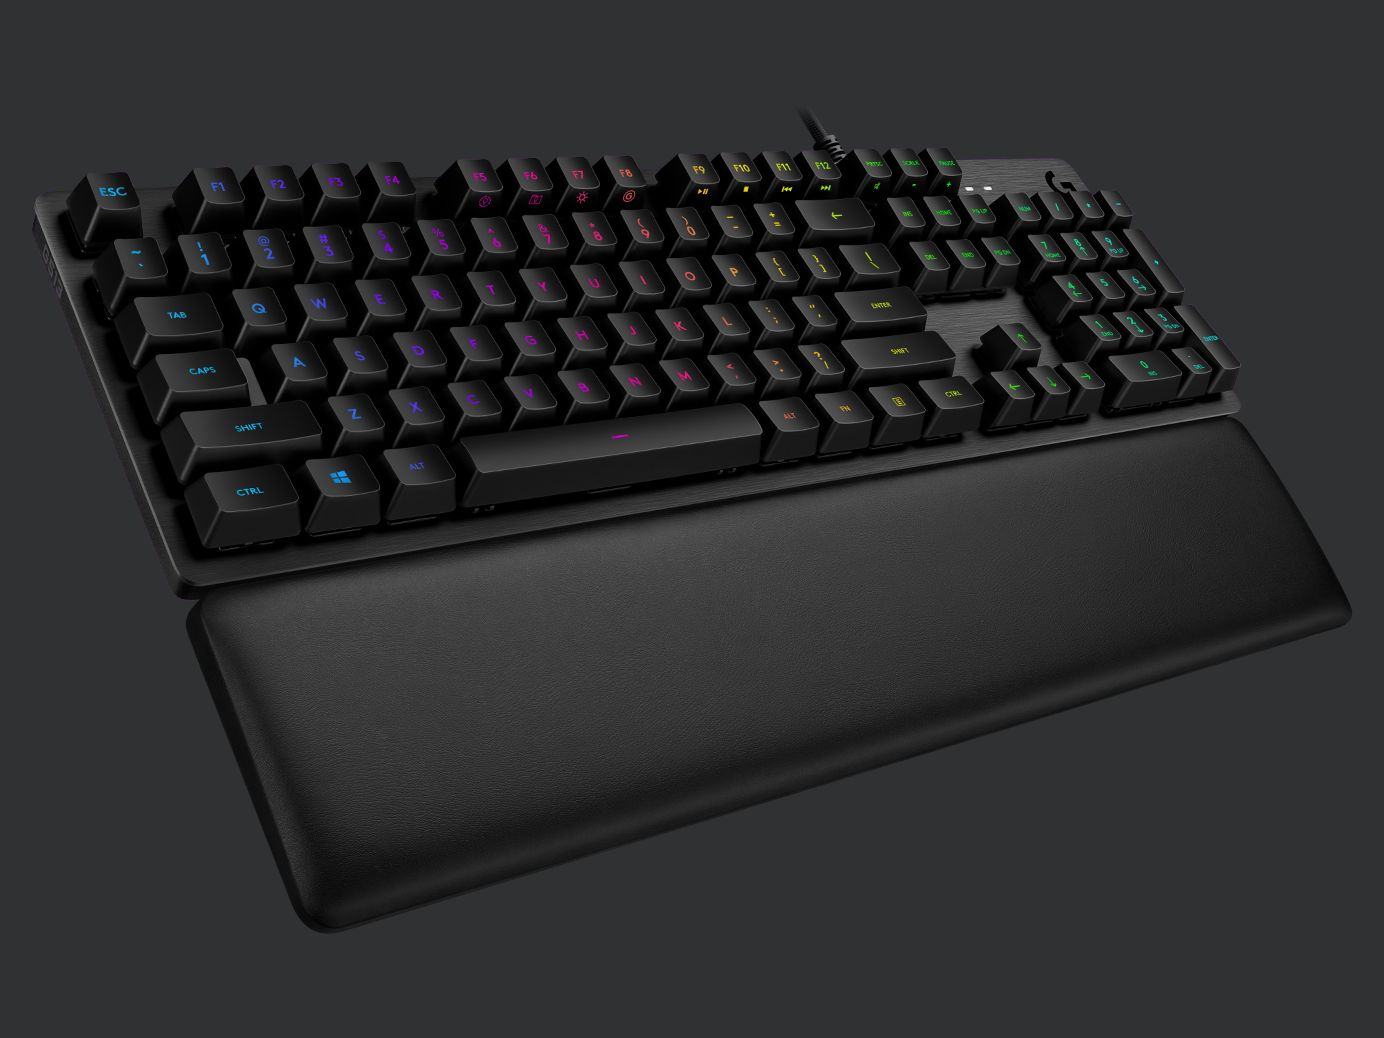 Image may contain Electronics Computer Hardware Hardware Keyboard Computer and Computer Keyboard